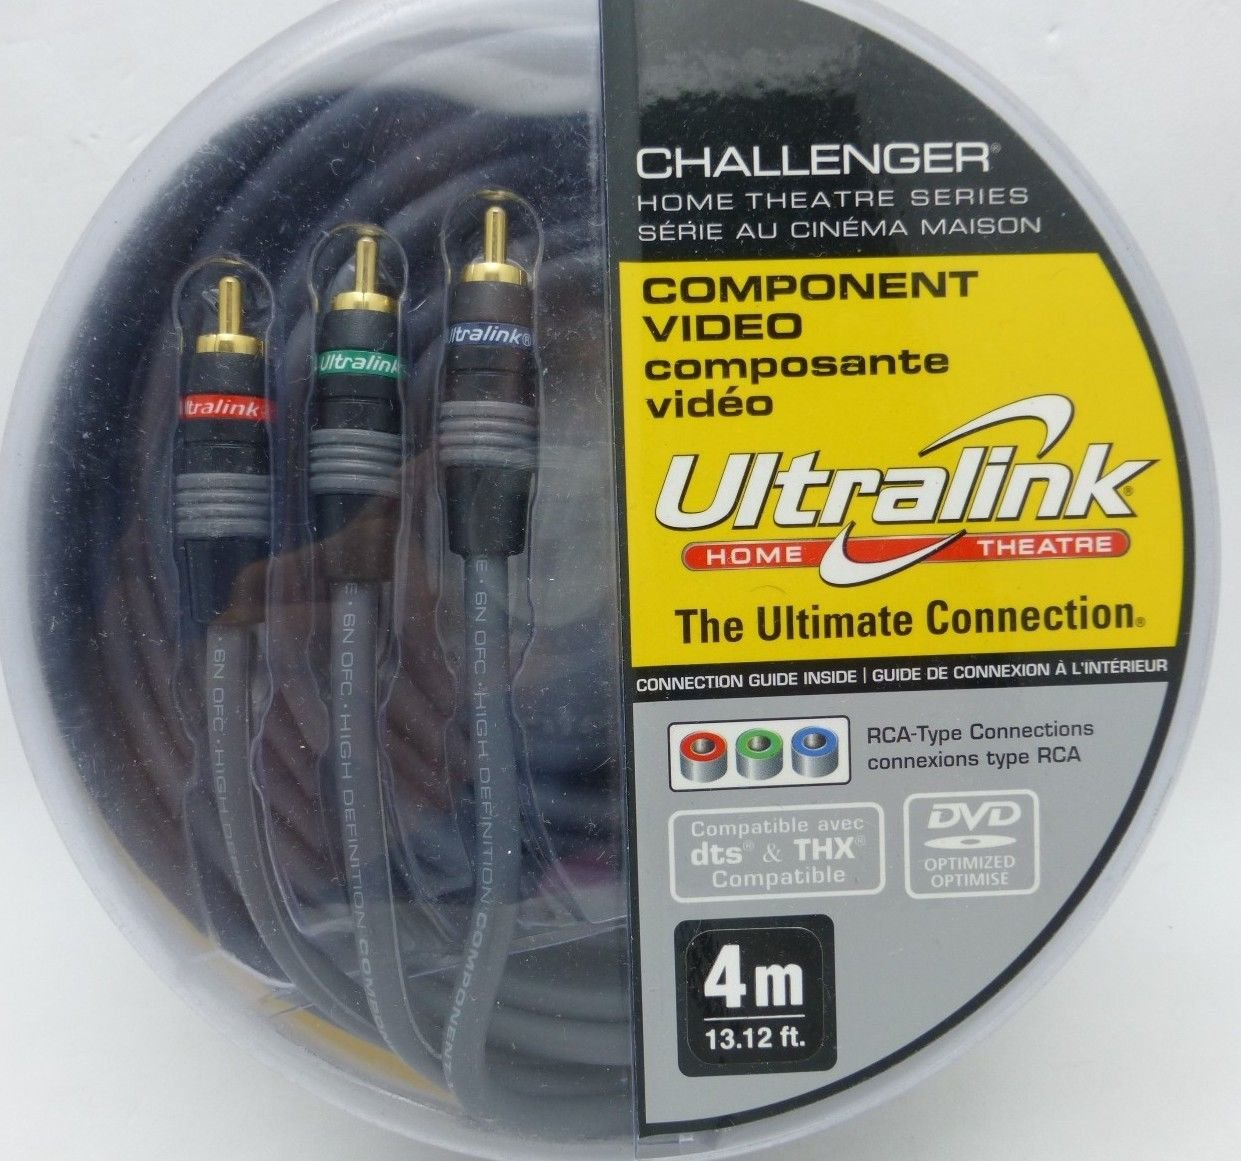 Amazon.com: Ultralink Ccv-4m Challenger[r] Component Video Cable [4 ...